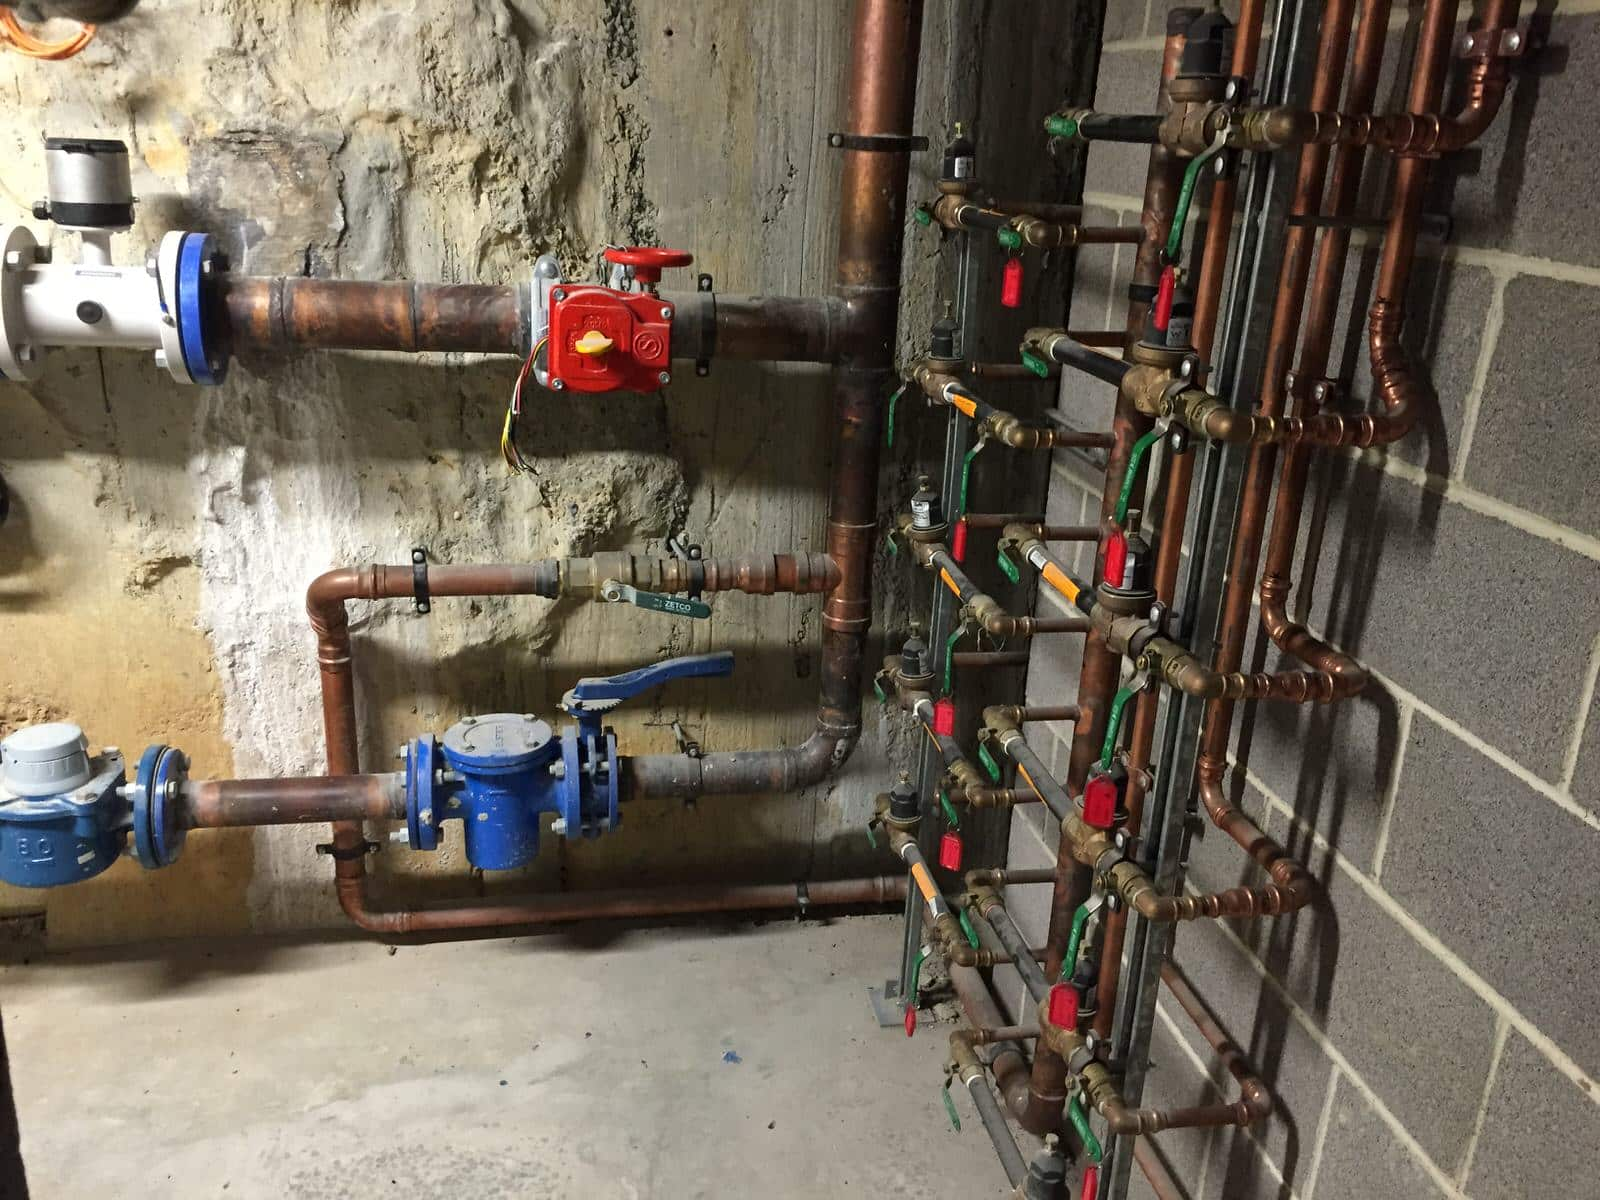 Backflow devices in a building